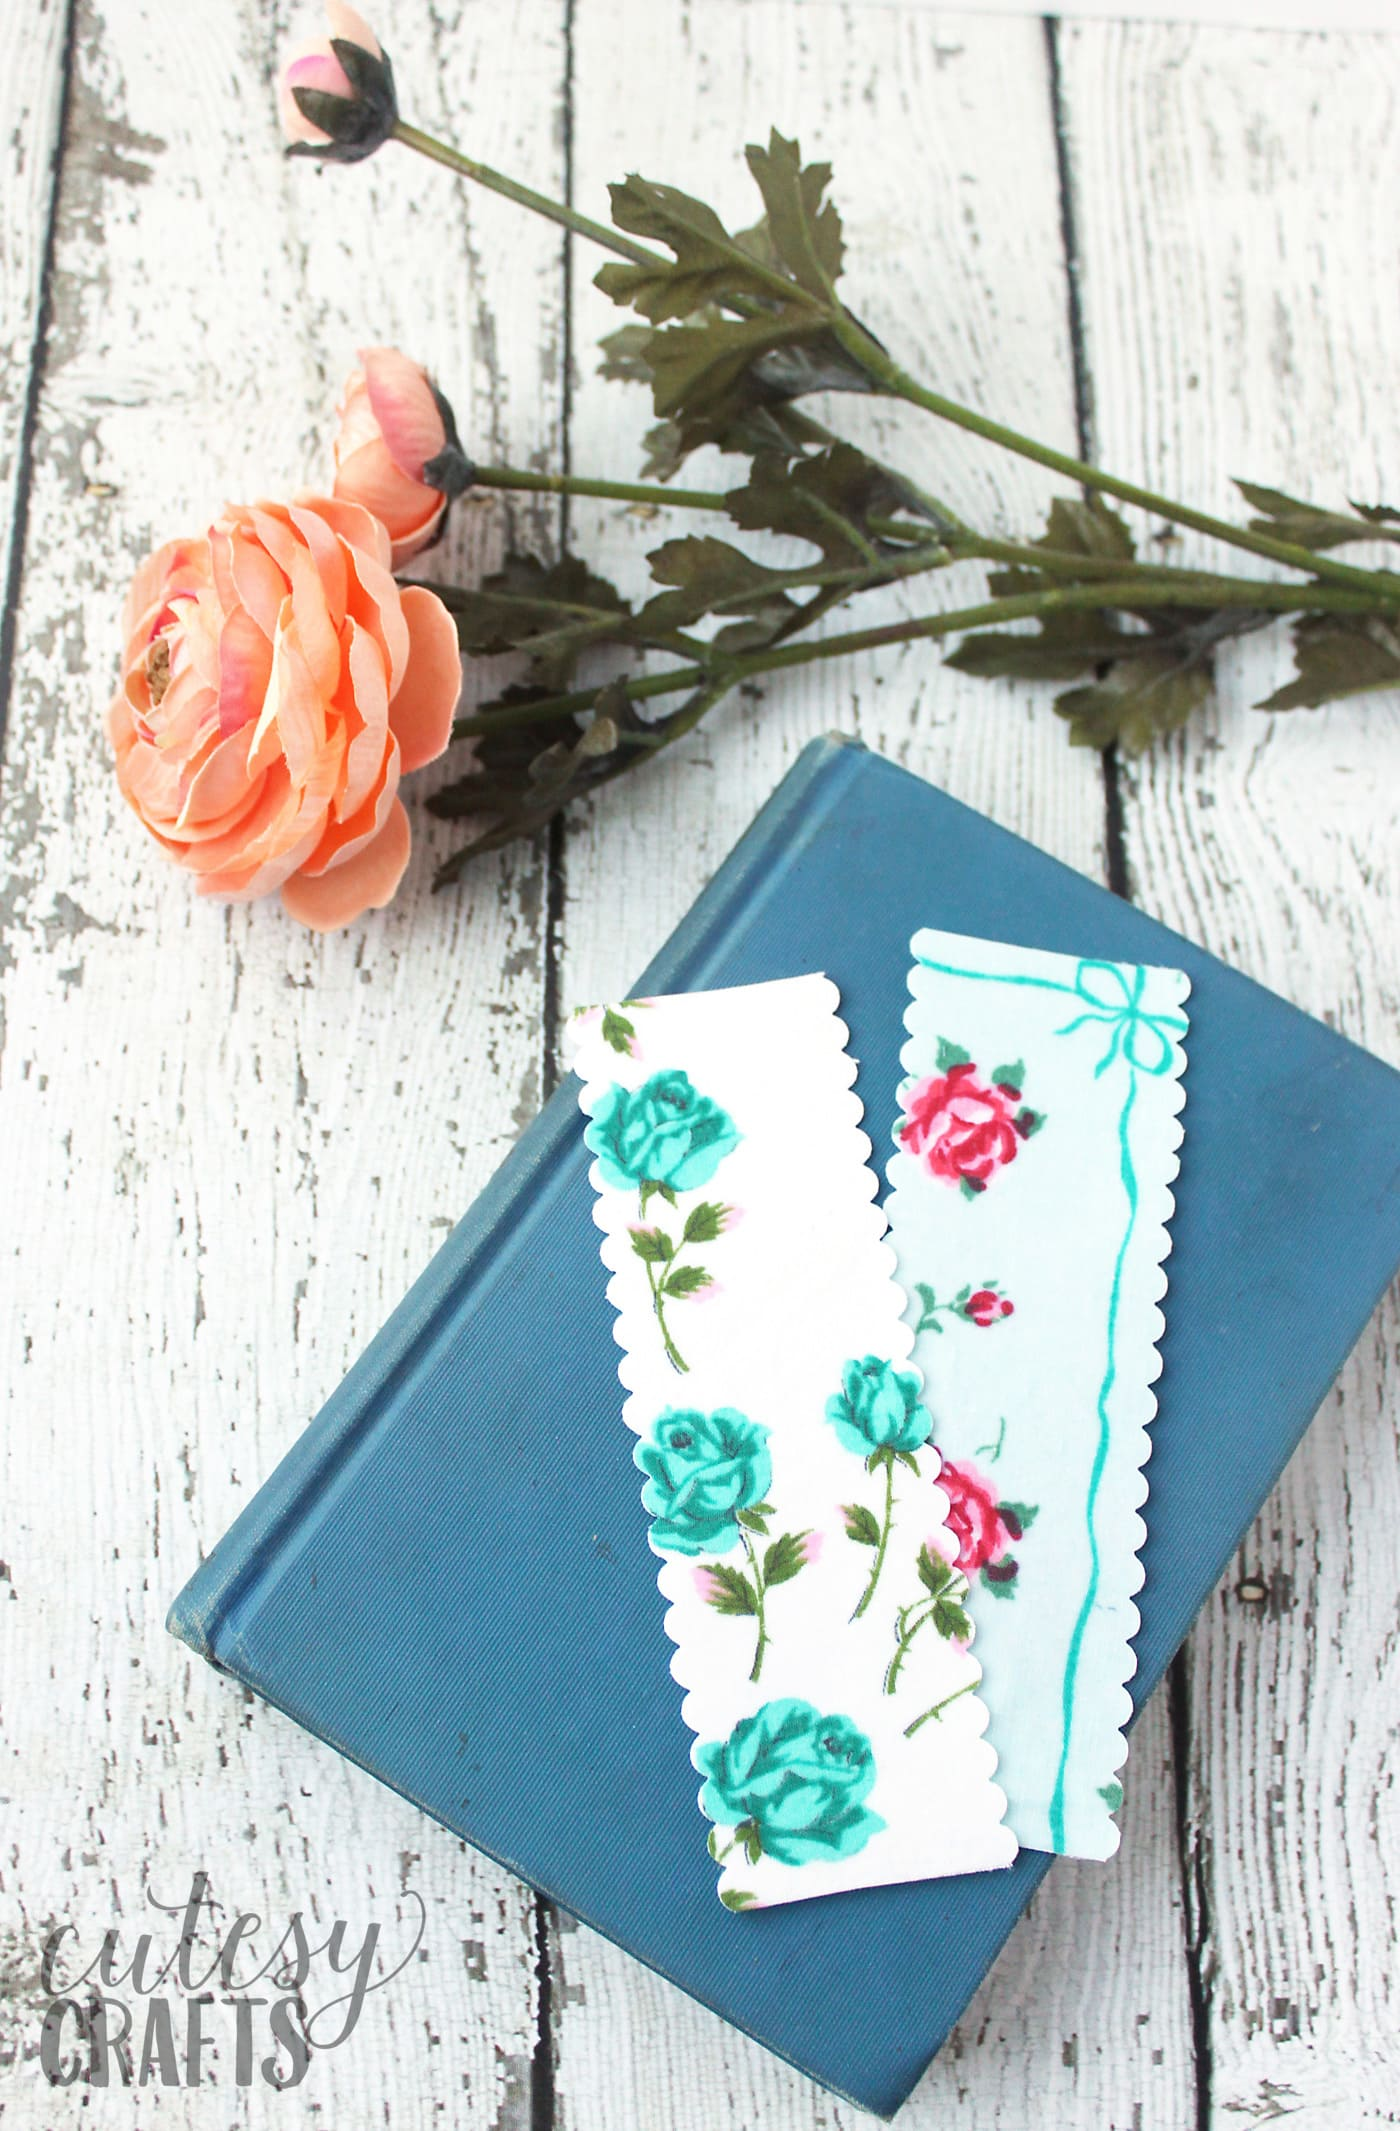 DIY Handmade Bookmarks Using Vintage Linens The Polka